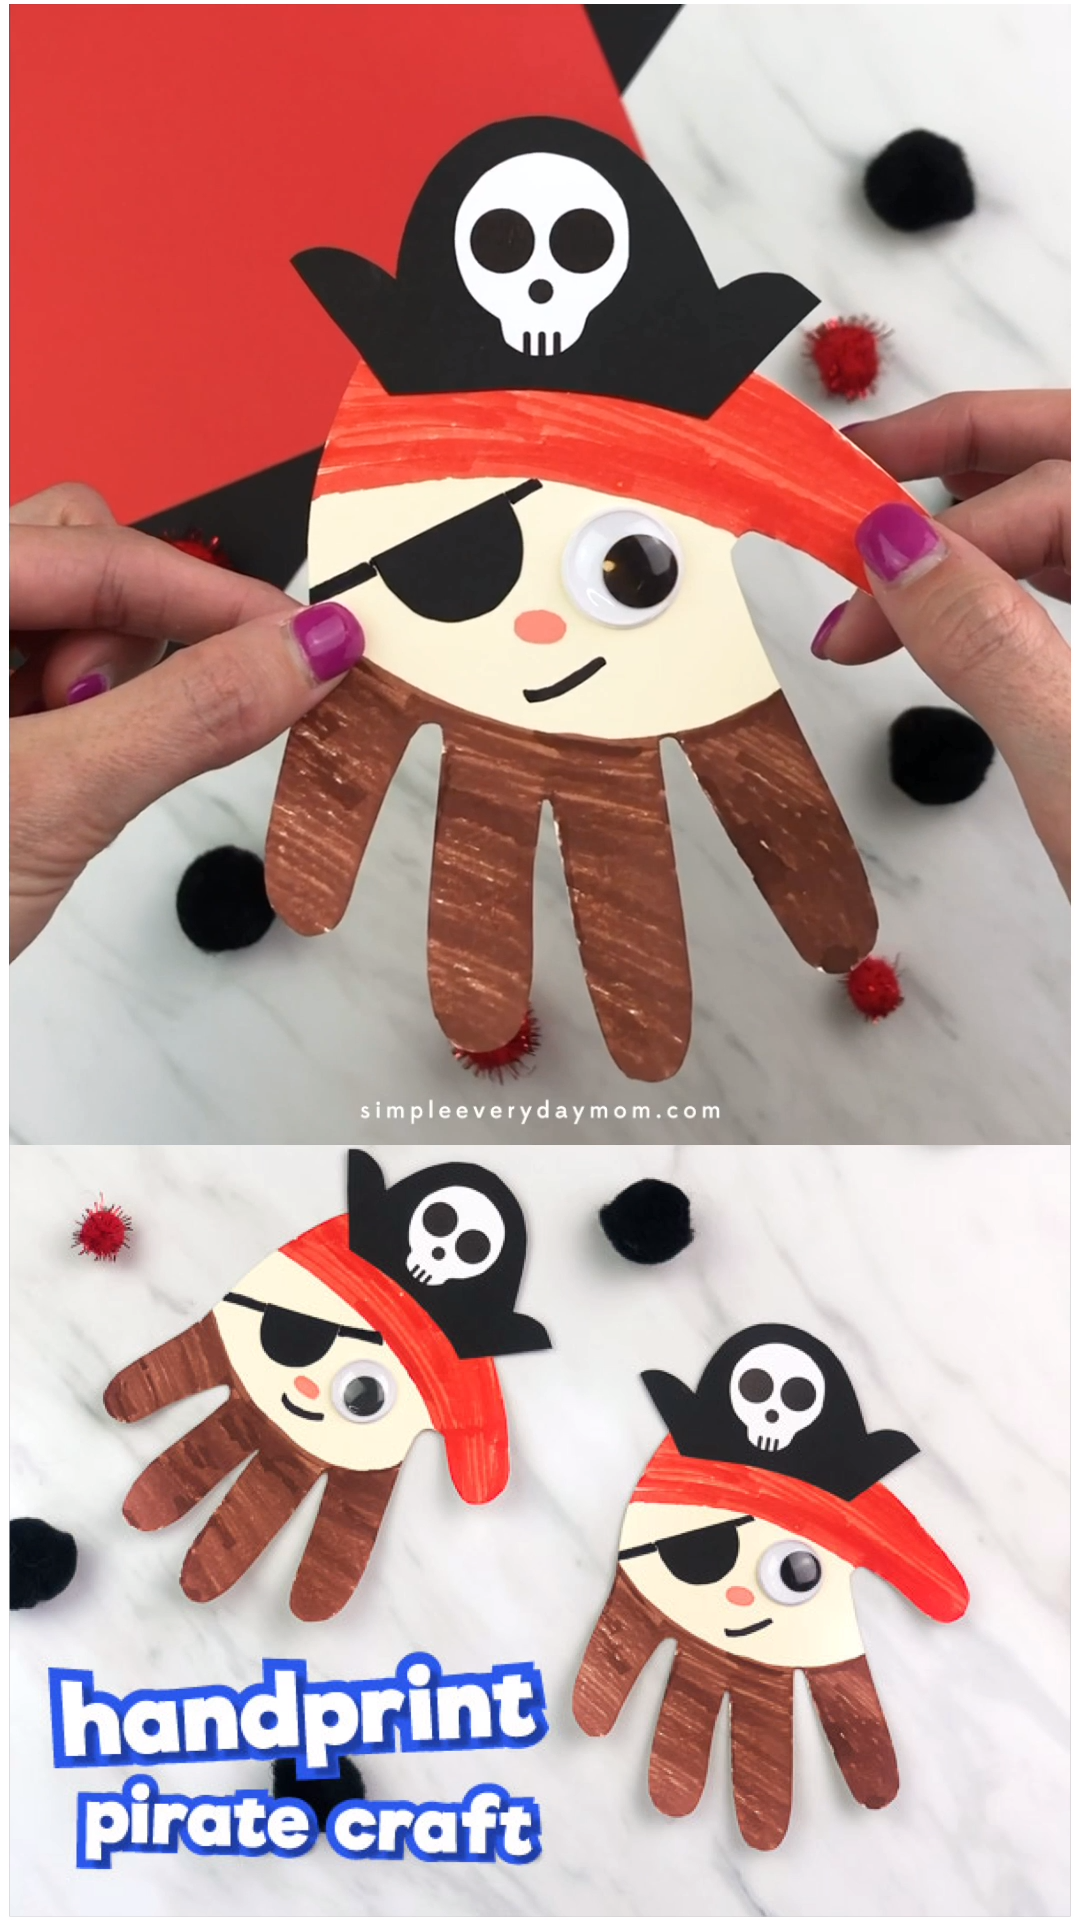 Make This Easy Pom Pom Sheep Craft For Kids Make This Easy Pom Pom Sheep Craft For Kids Craft Video art and craft videos